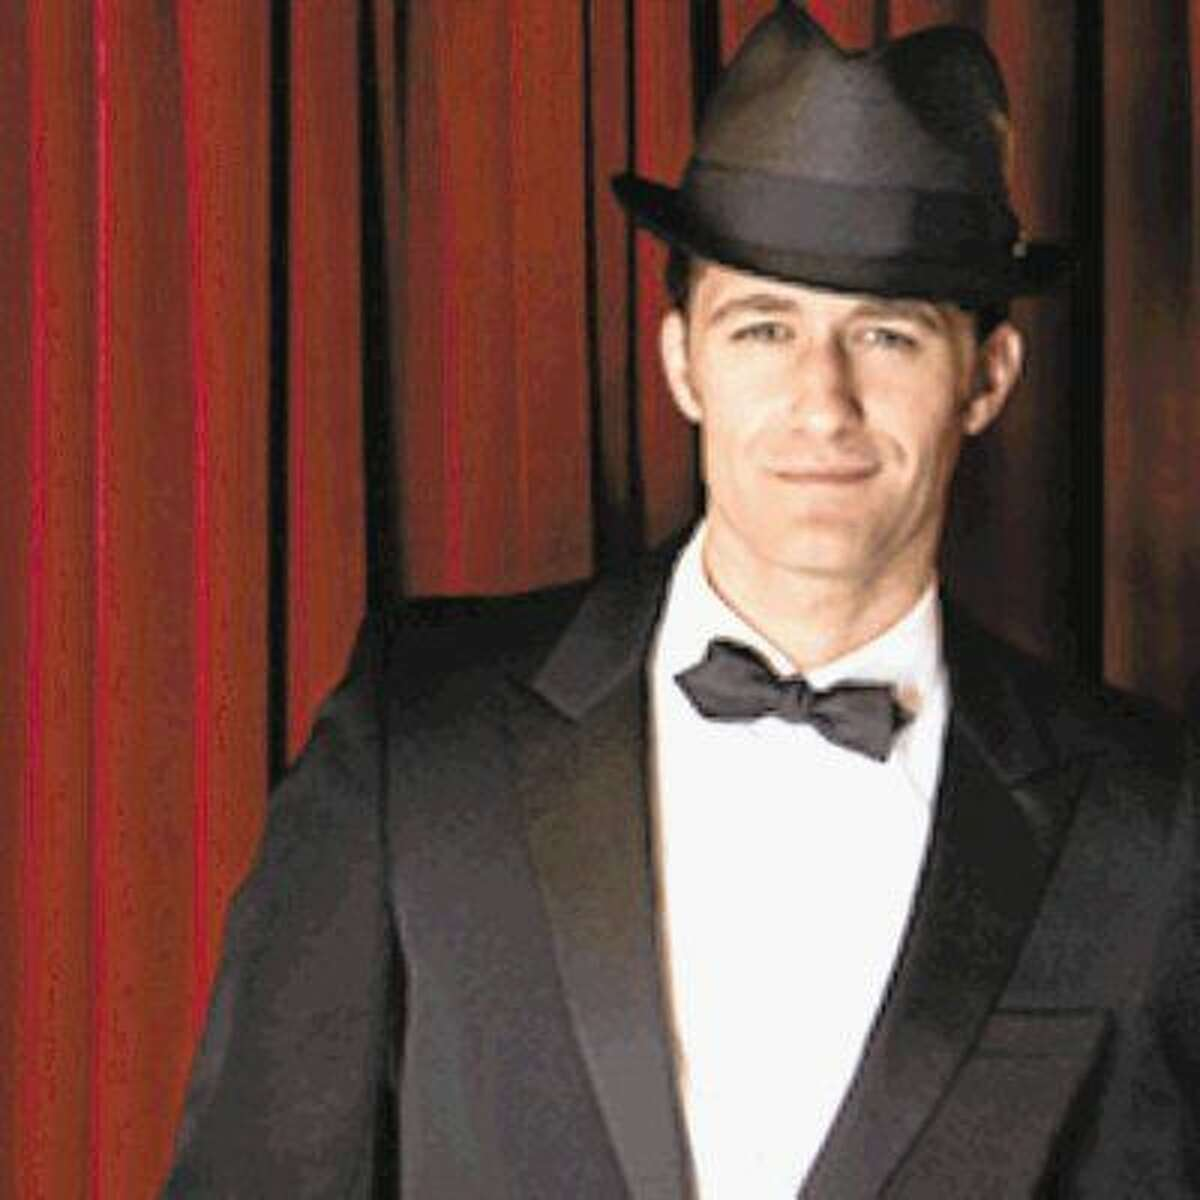 Matthew Morrison will perform with the Houston Symphony March 24-26.